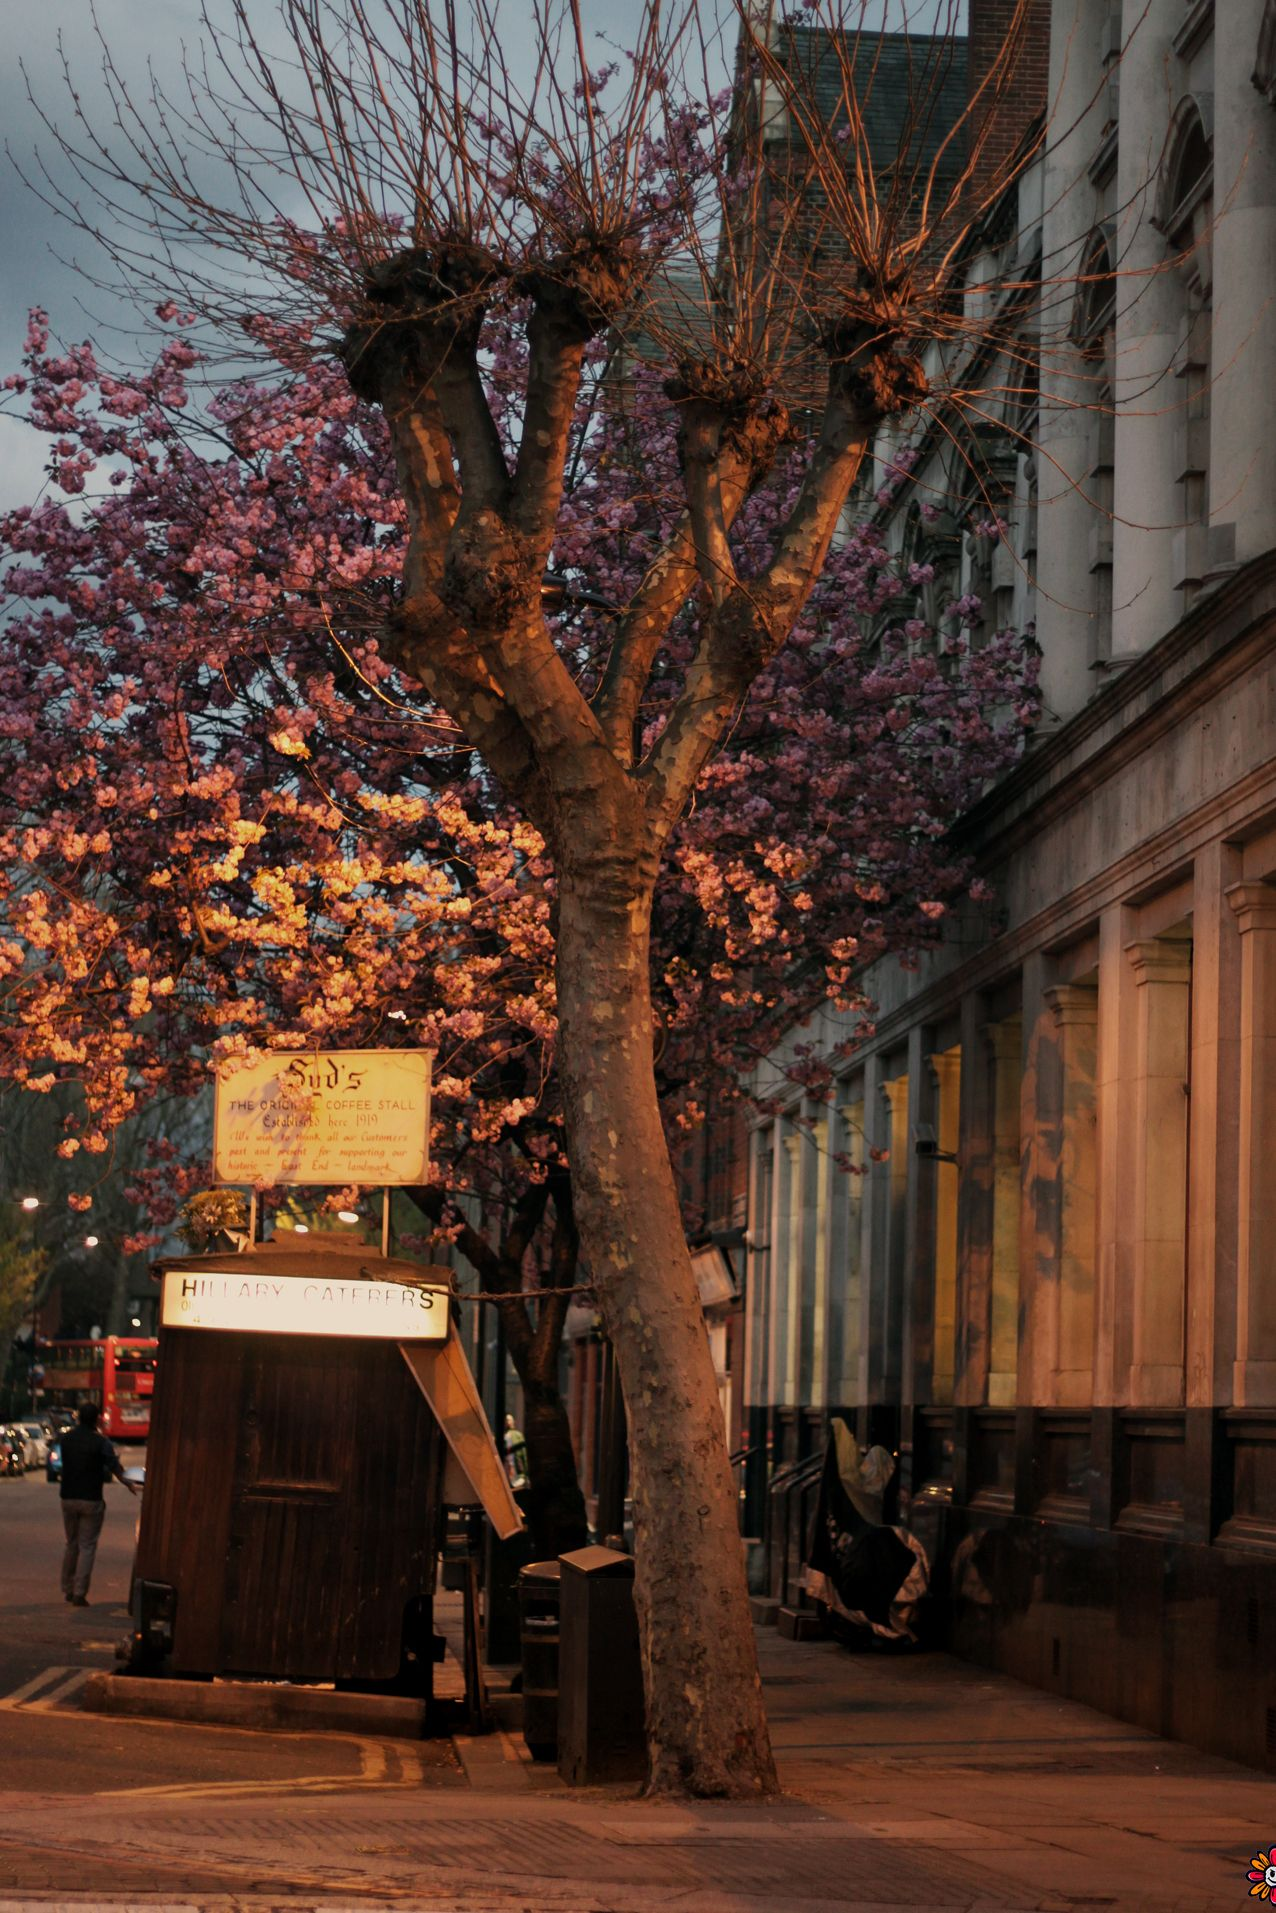 Shoreditch London Uk: Shoreditch, London #PHOTO By Male® #April '14